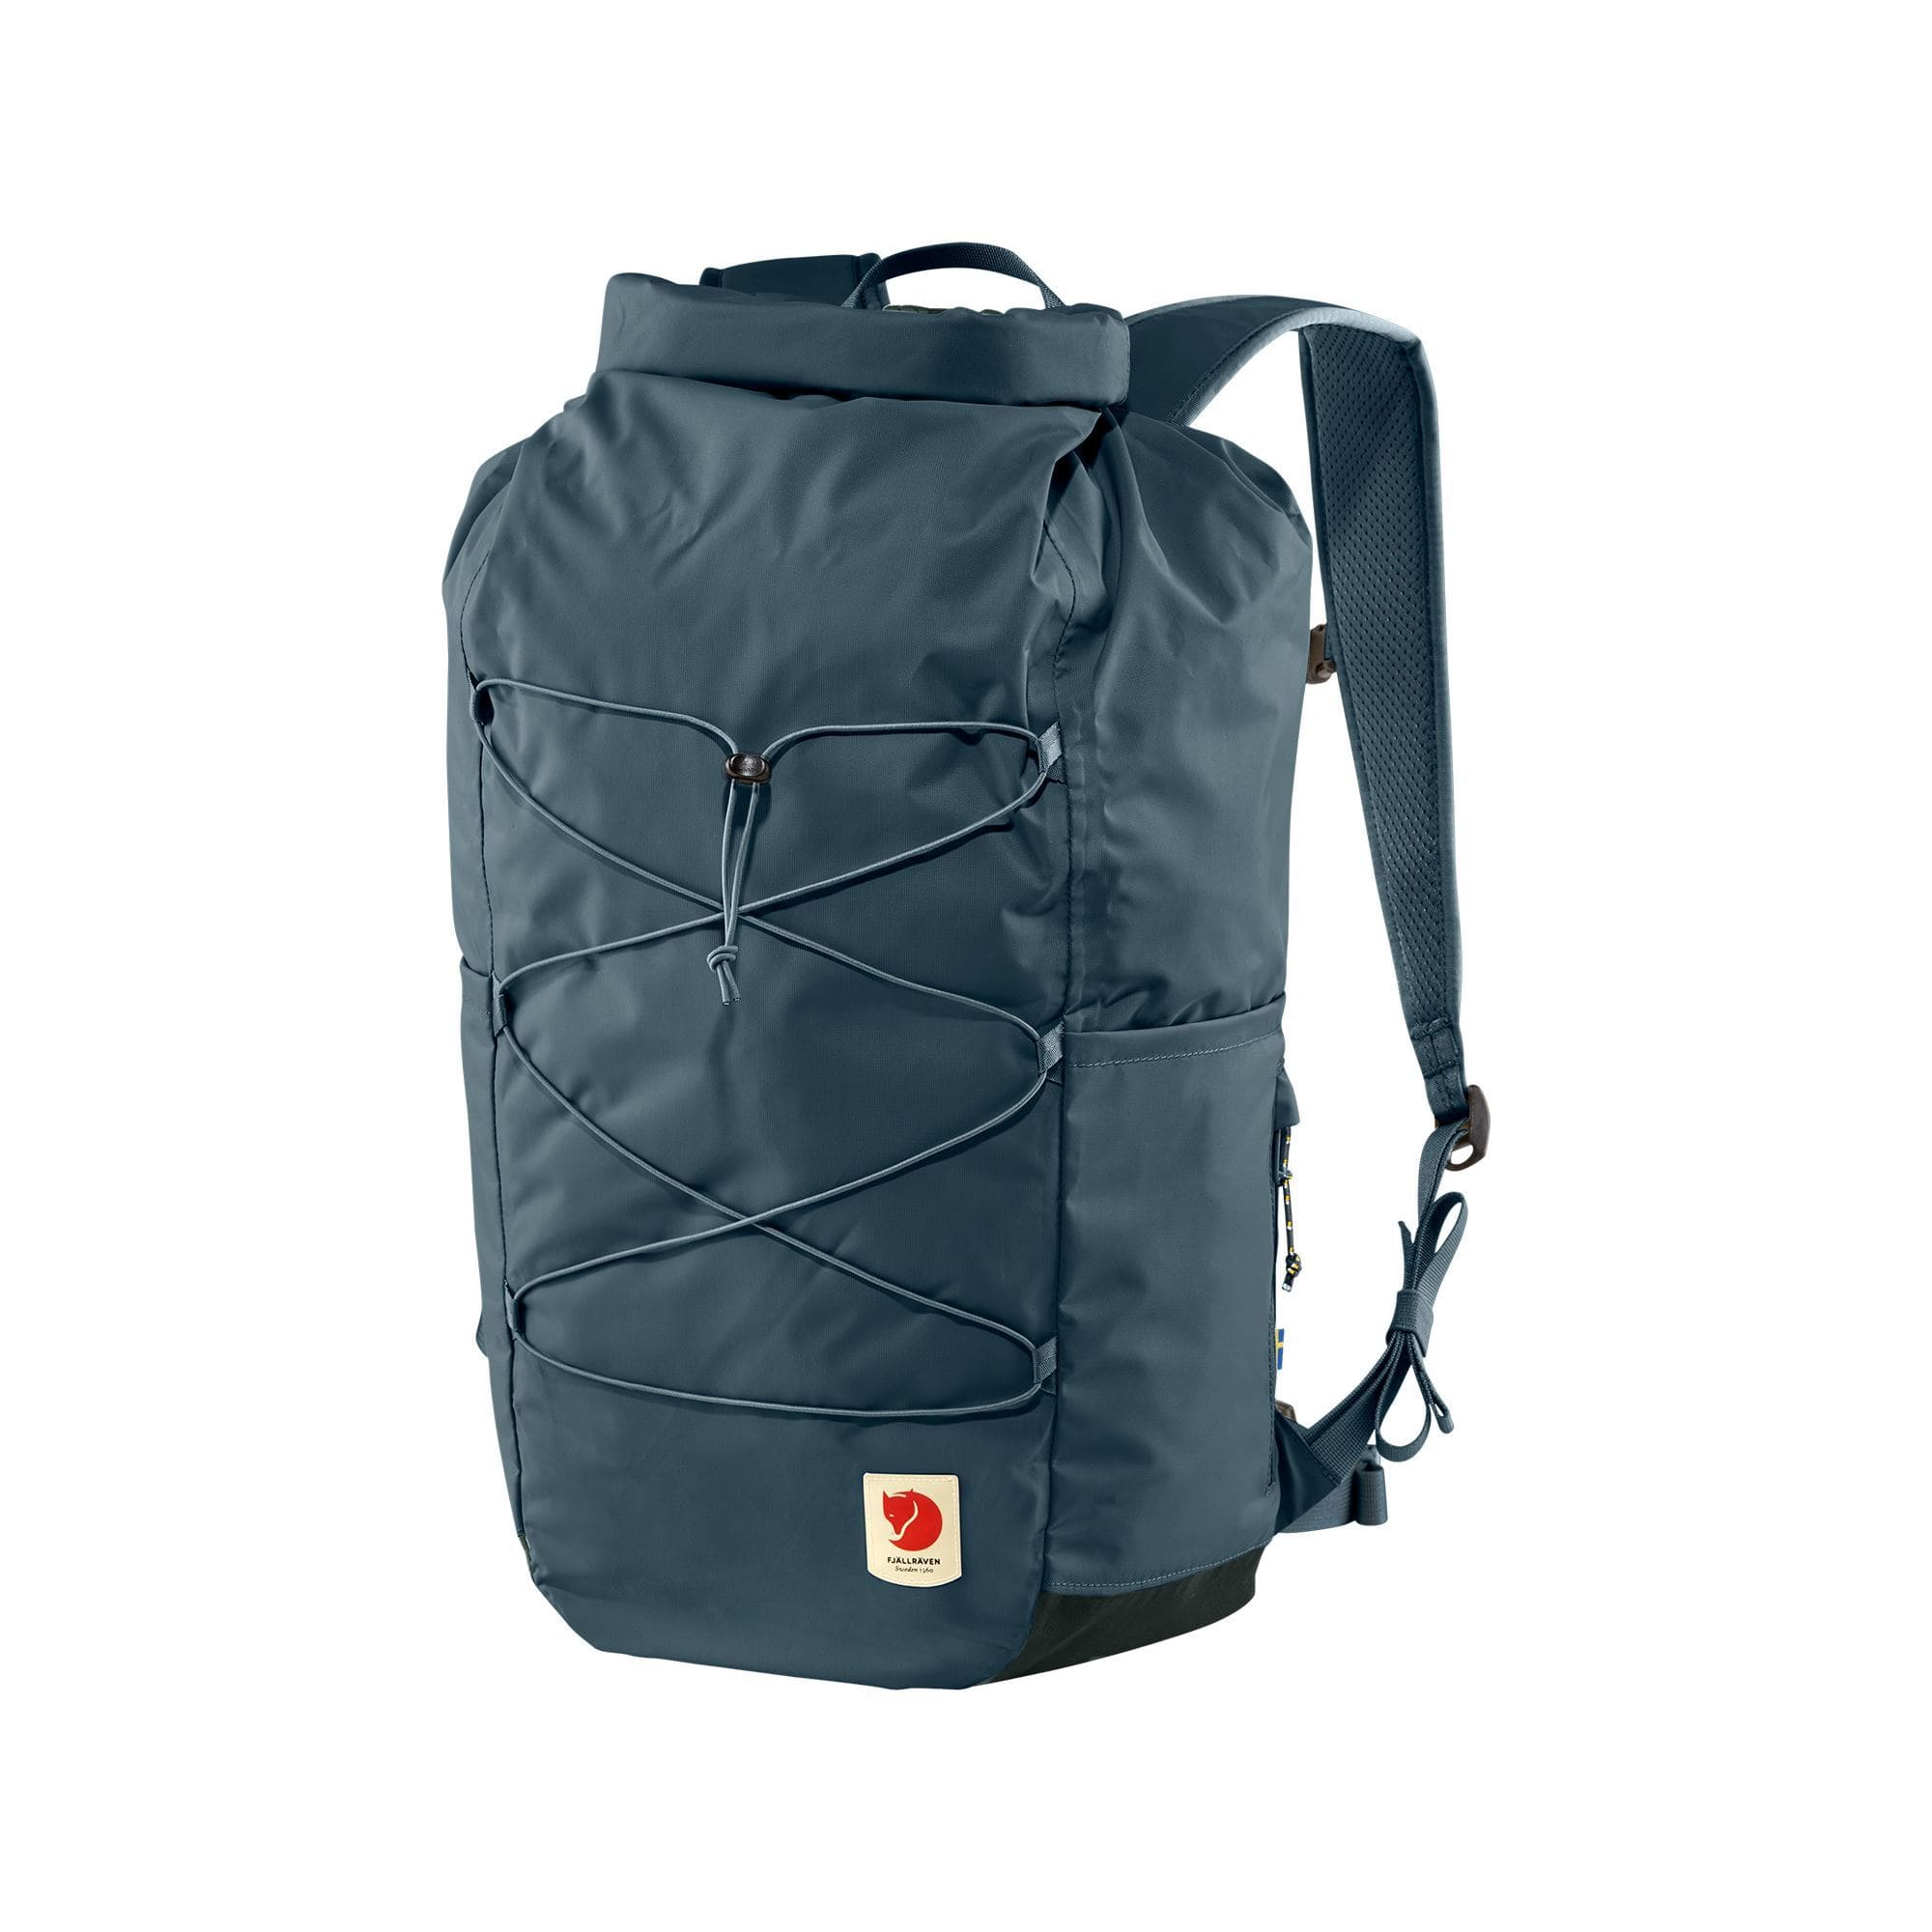 Fjällräven Bags One Size / Navy FJÄLLRÄVEN - High Coast Rolltop 26 Backpack